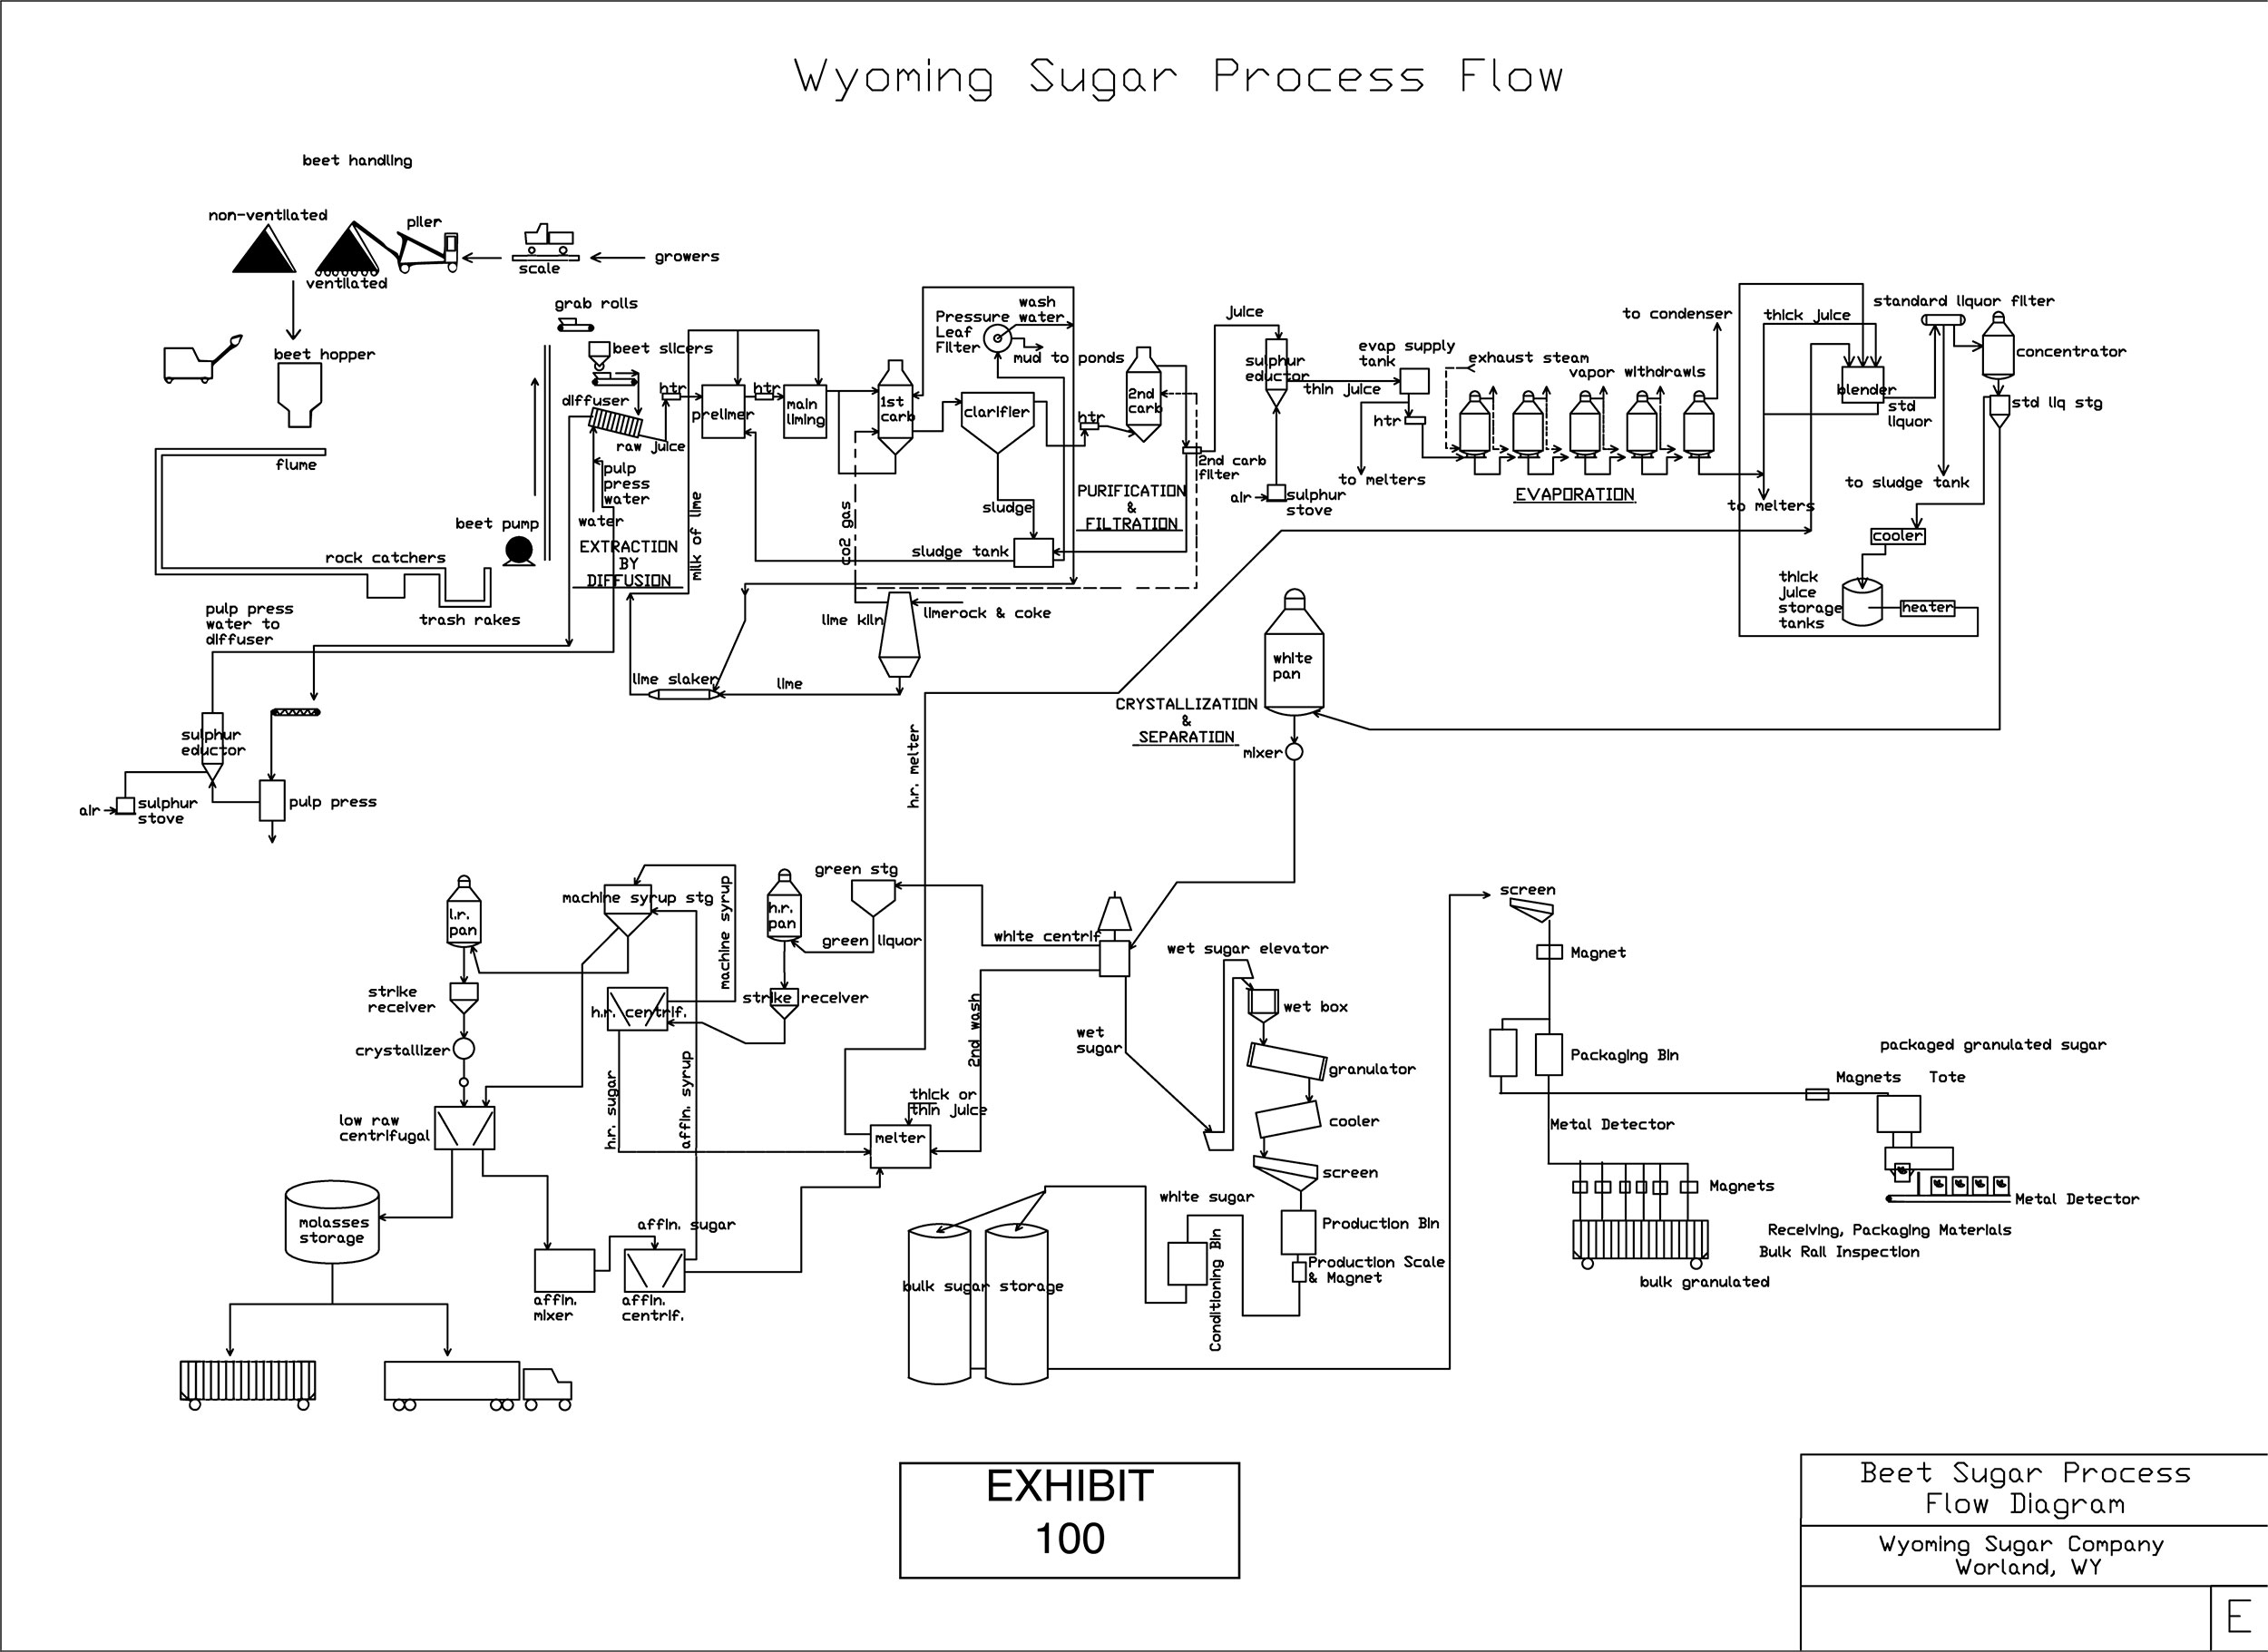 Process Flow Diagram Wyoming Sugar Process Flow Diagram Wyoming Sugar